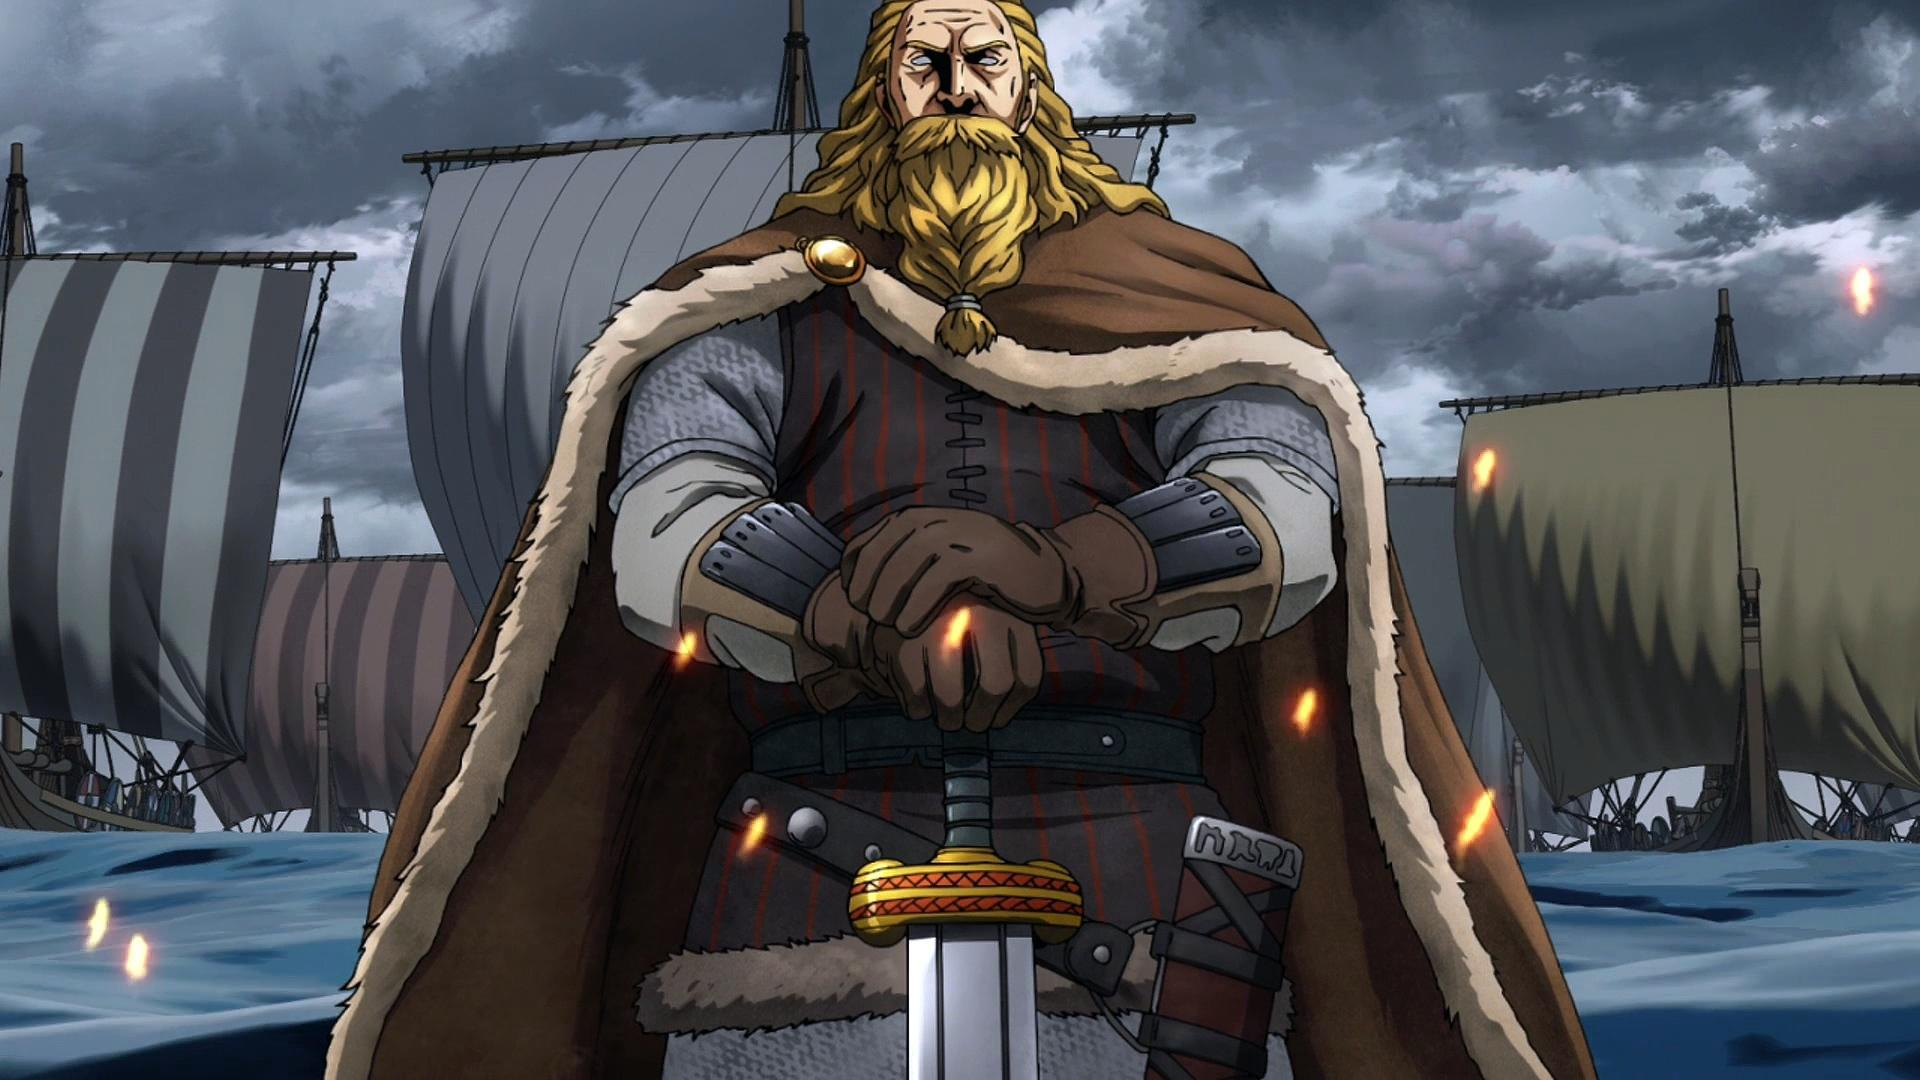 Vinland Saga Wallpaper For Android Apk Download